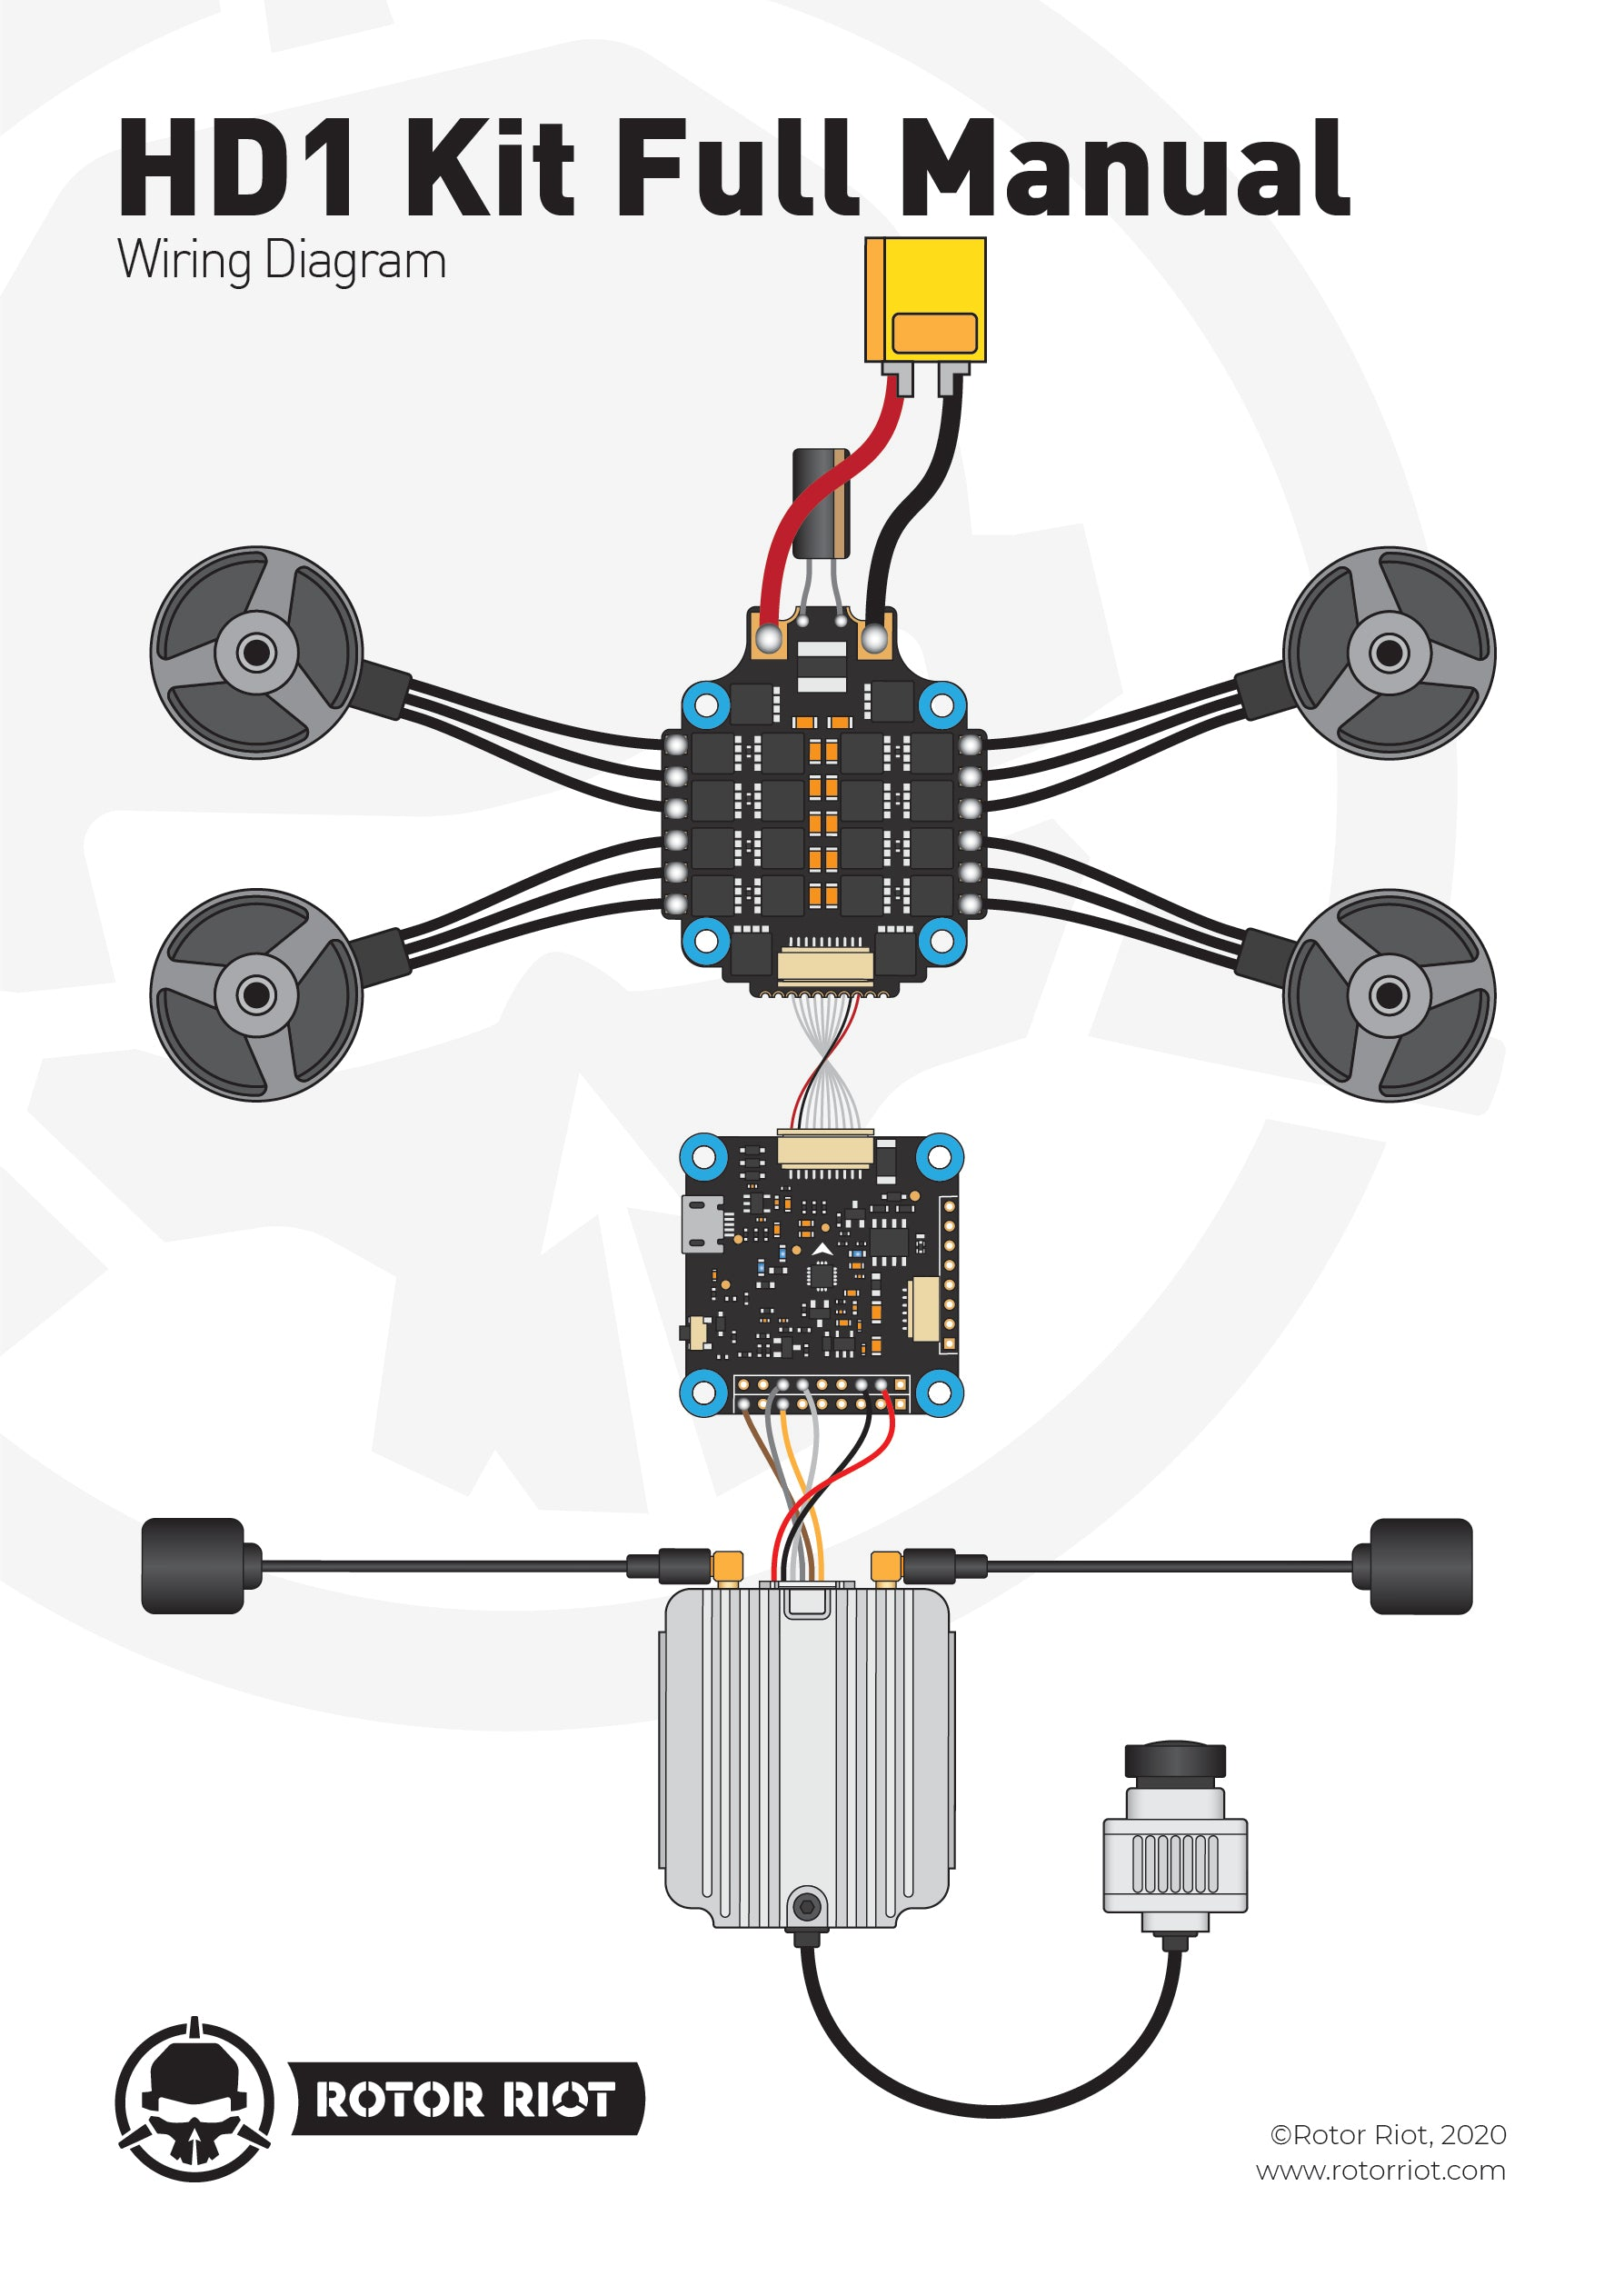 Rotor Riot HD1 Kit Full Manual Wiring Diagram with DJI Air Unit